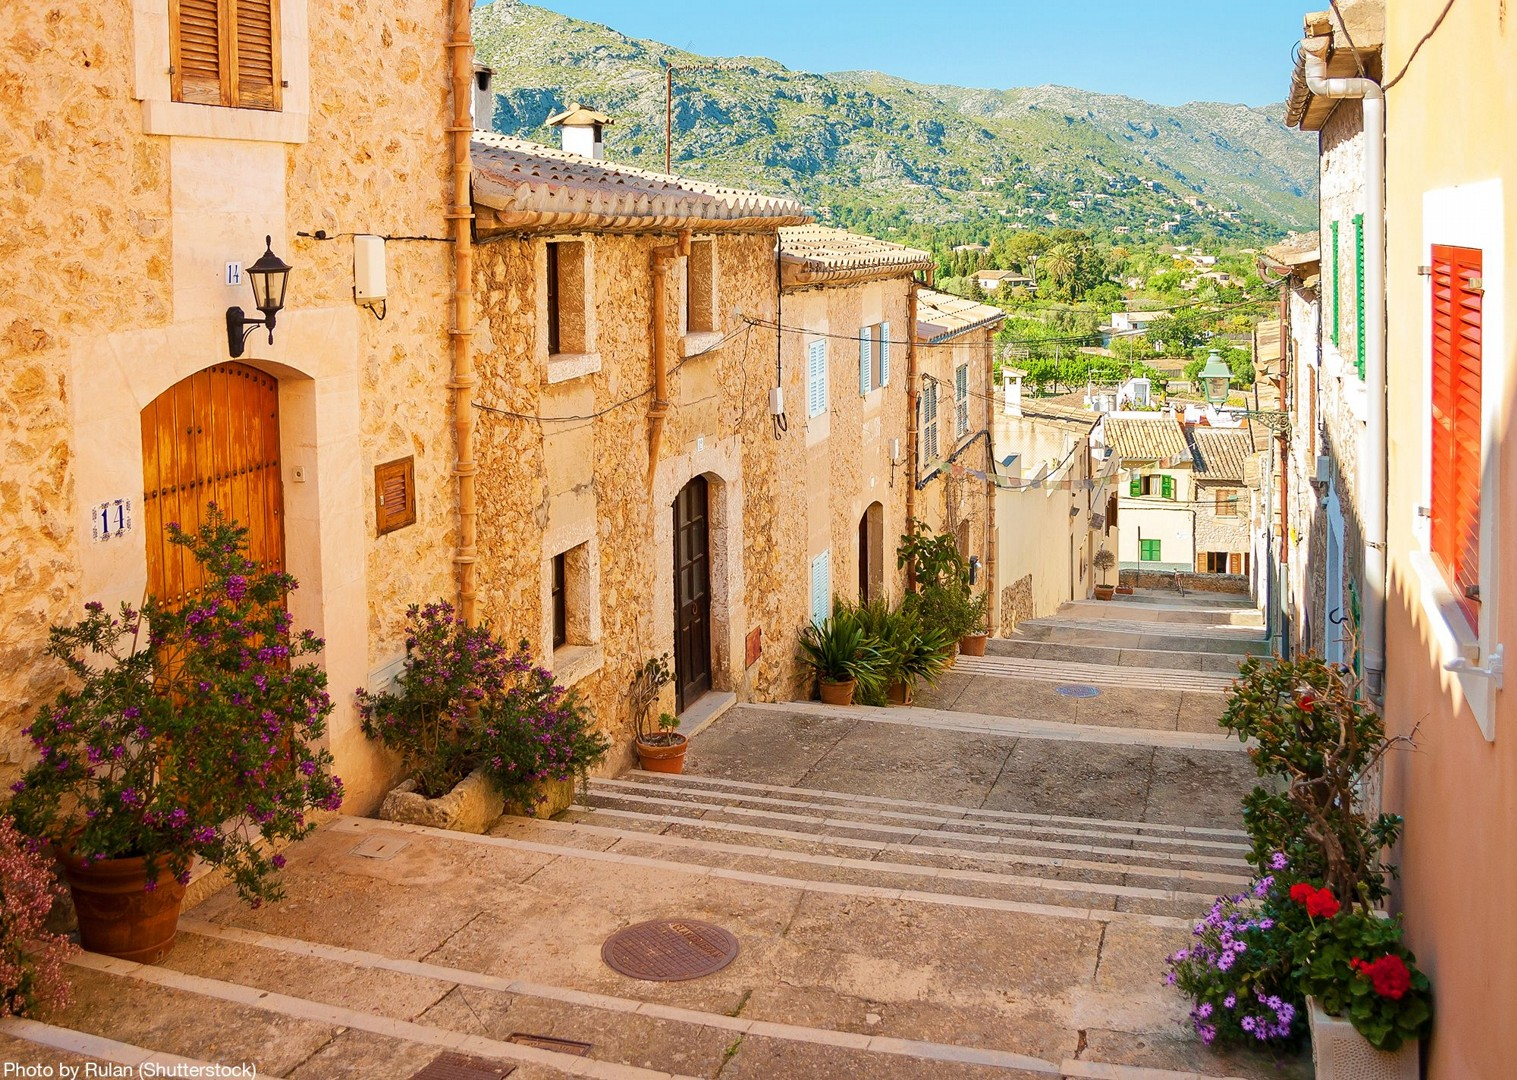 eu-centro-pollenca-mallorca-explore-local-streets-bike-tour.jpg - Spain - Mallorca - Self-Guided Leisure Cycling Holiday - Leisure Cycling